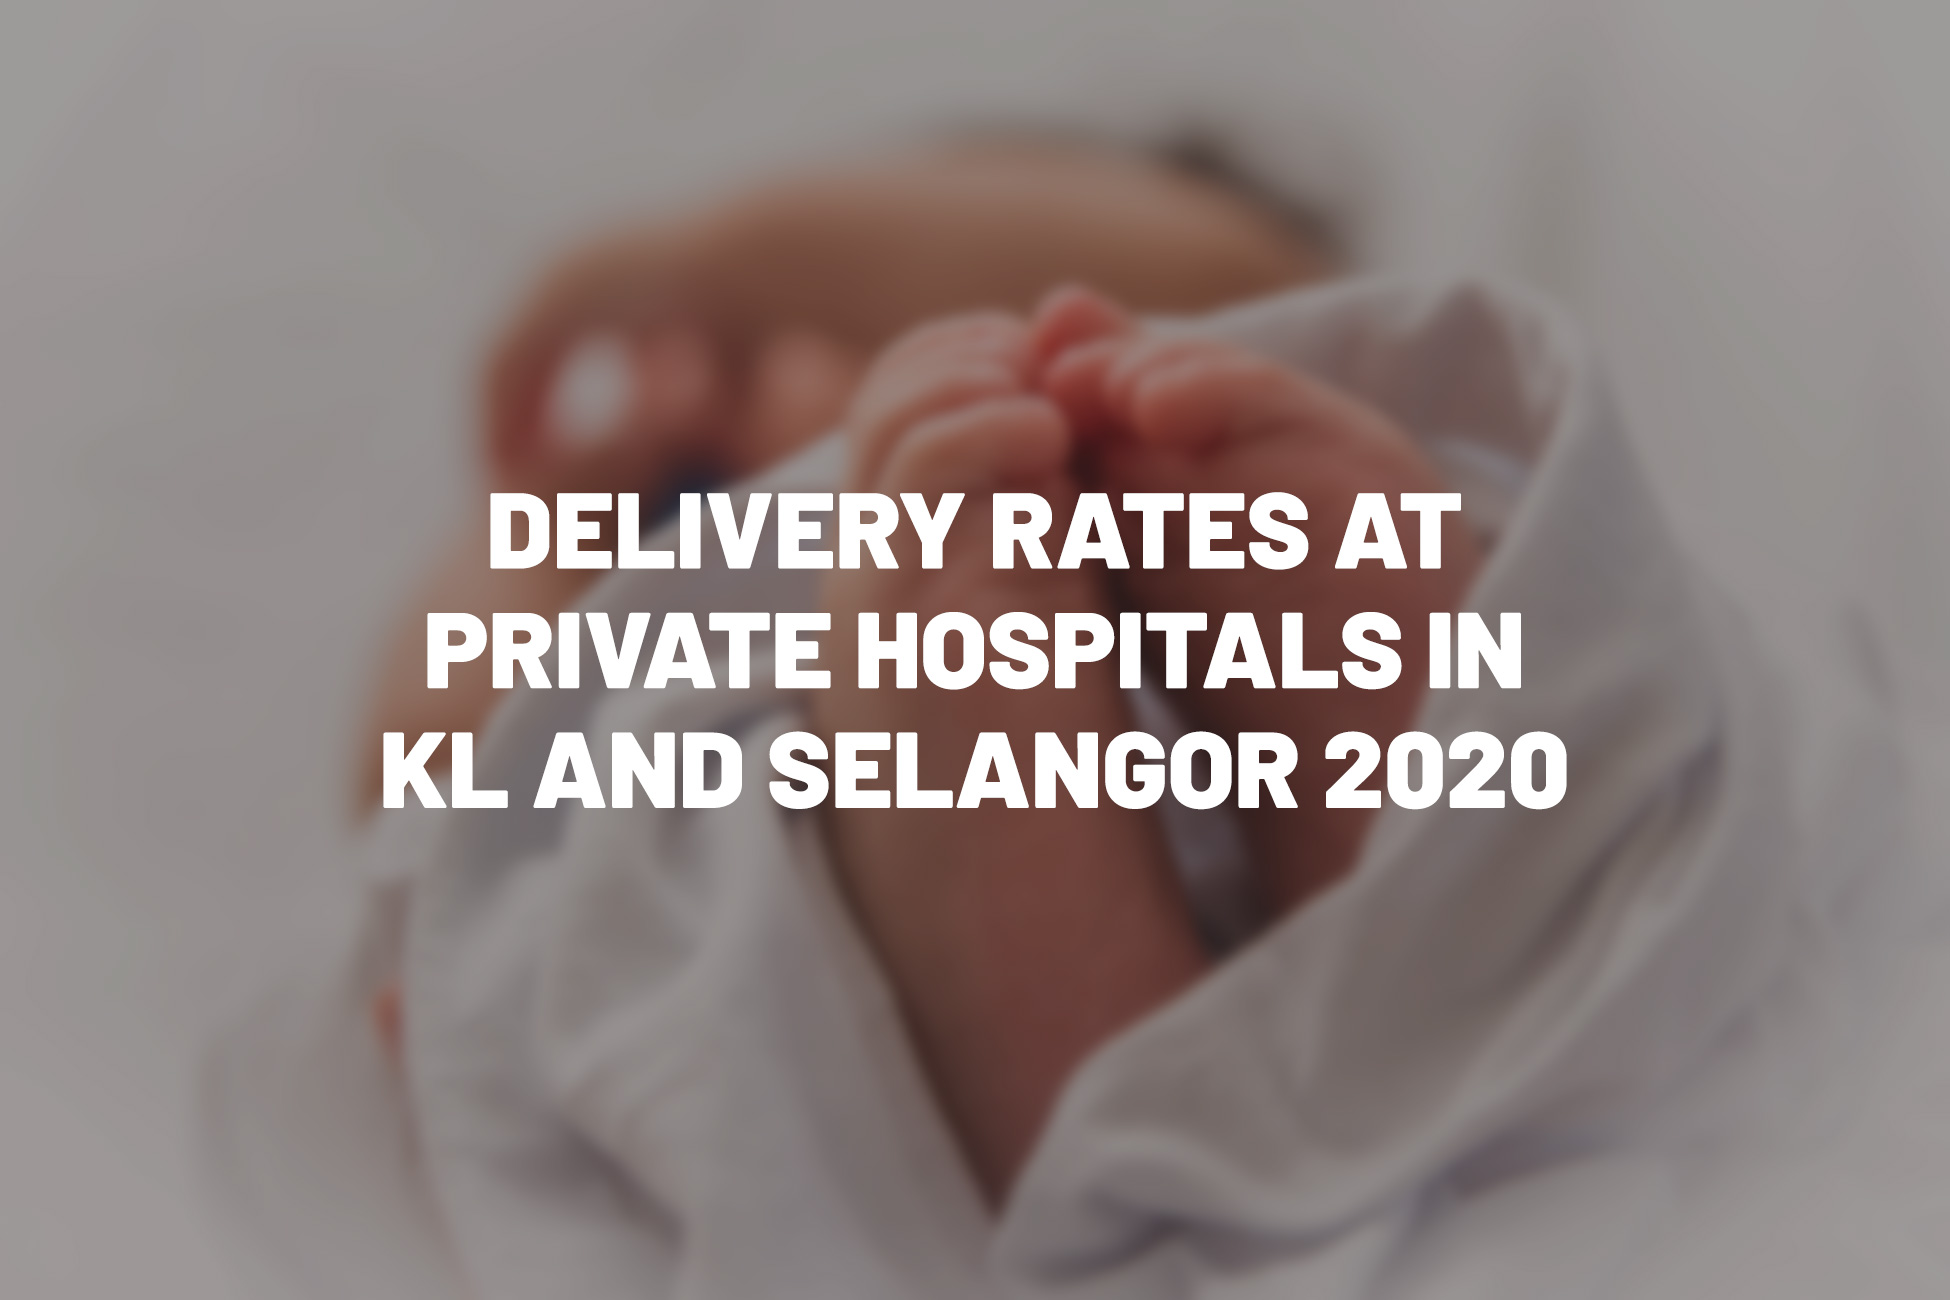 Delivery Rates at Private Hospitals in KL and Selangor 2020